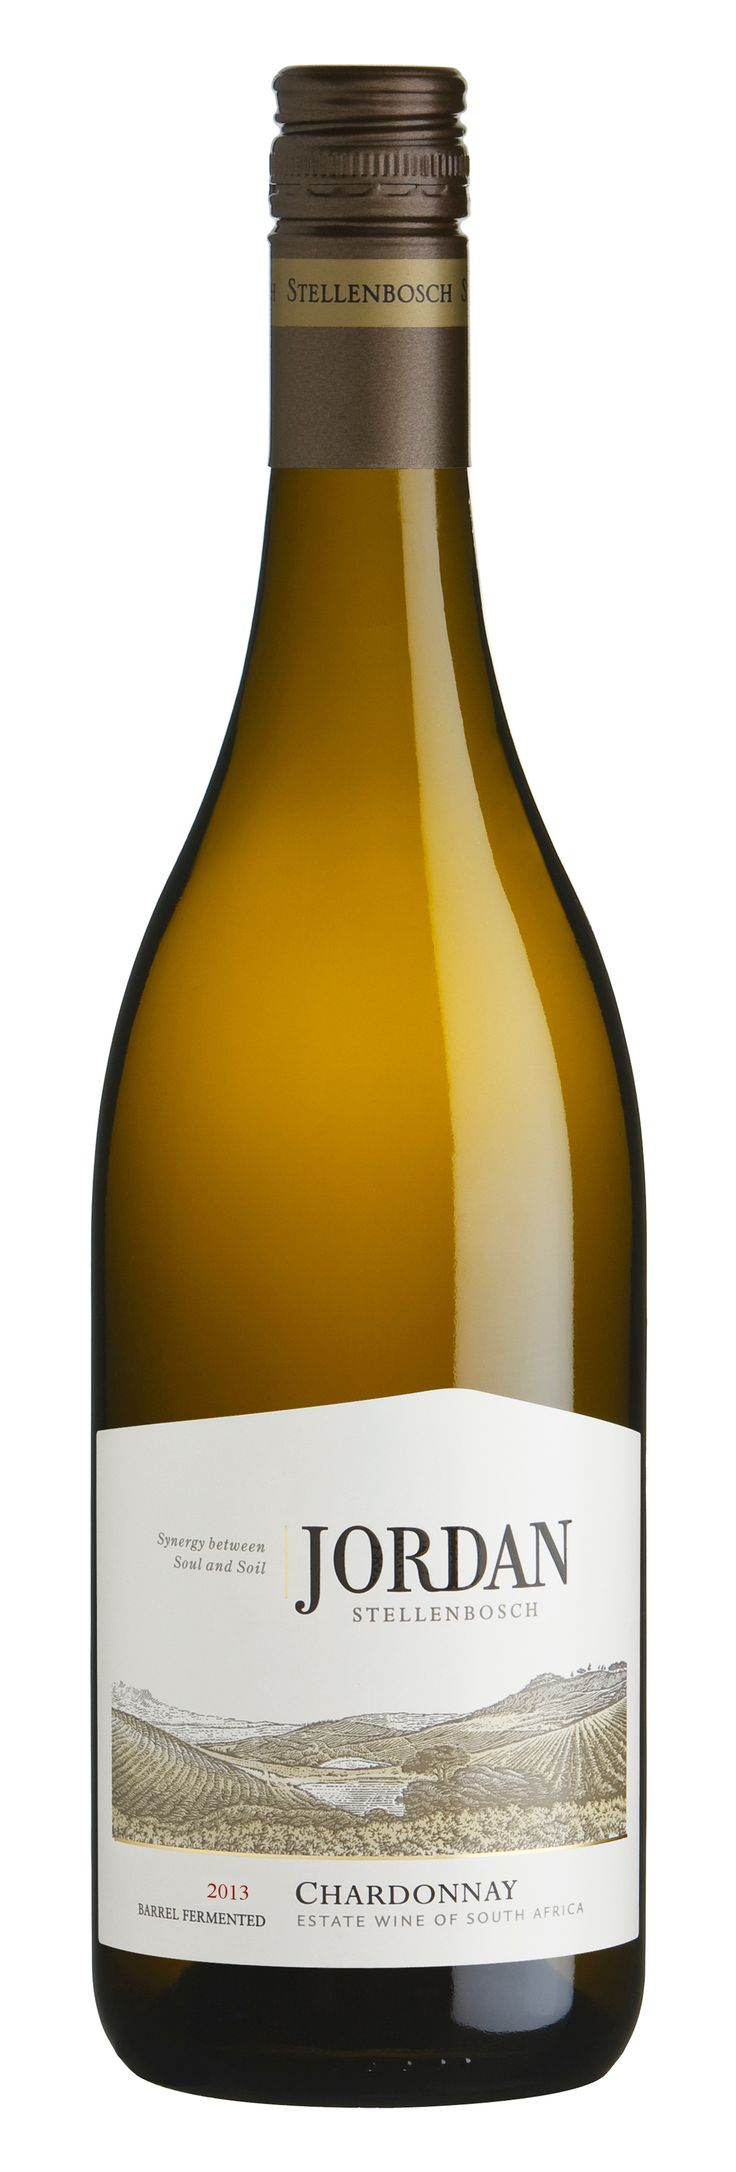 100% Chardonnay - A powerful expression of Chardonnay, brimming with fruit flavour and elegance.  A  buttery toastiness from the oak rounds off the complex hazelnut and citrus flavours.